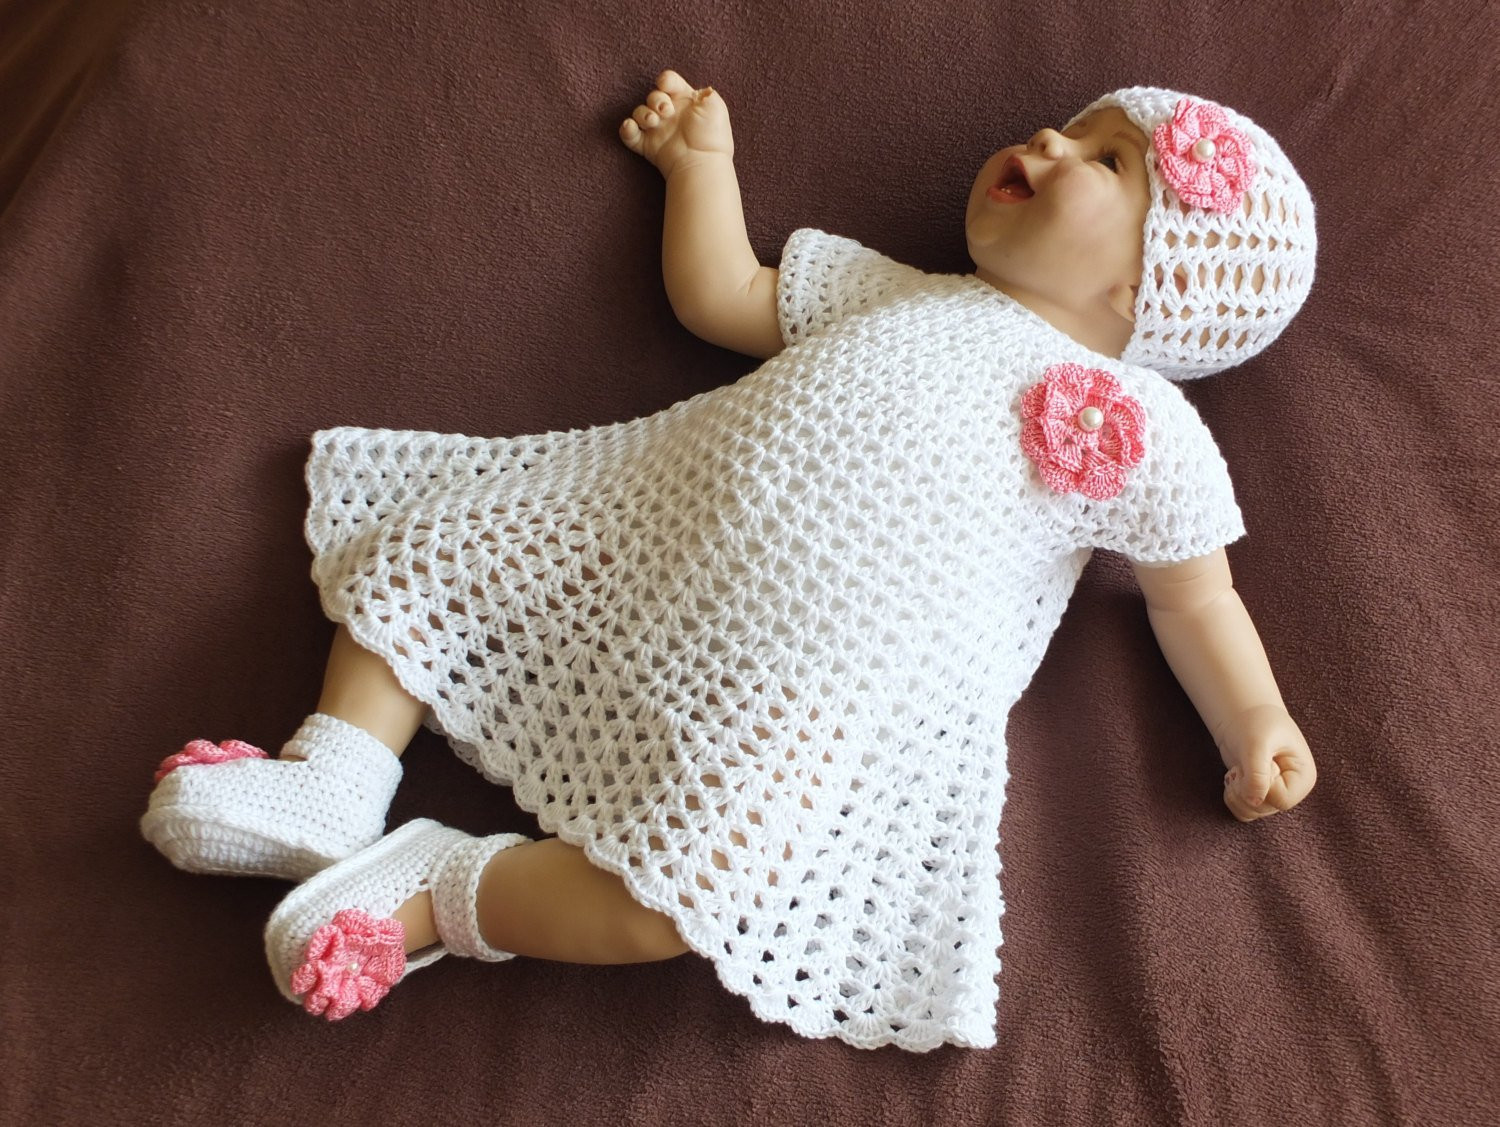 Crochet Baby Clothing Lovely Crochet Baby Dress Set White Baby Girl Summer Clothes Of Amazing 44 Ideas Crochet Baby Clothing